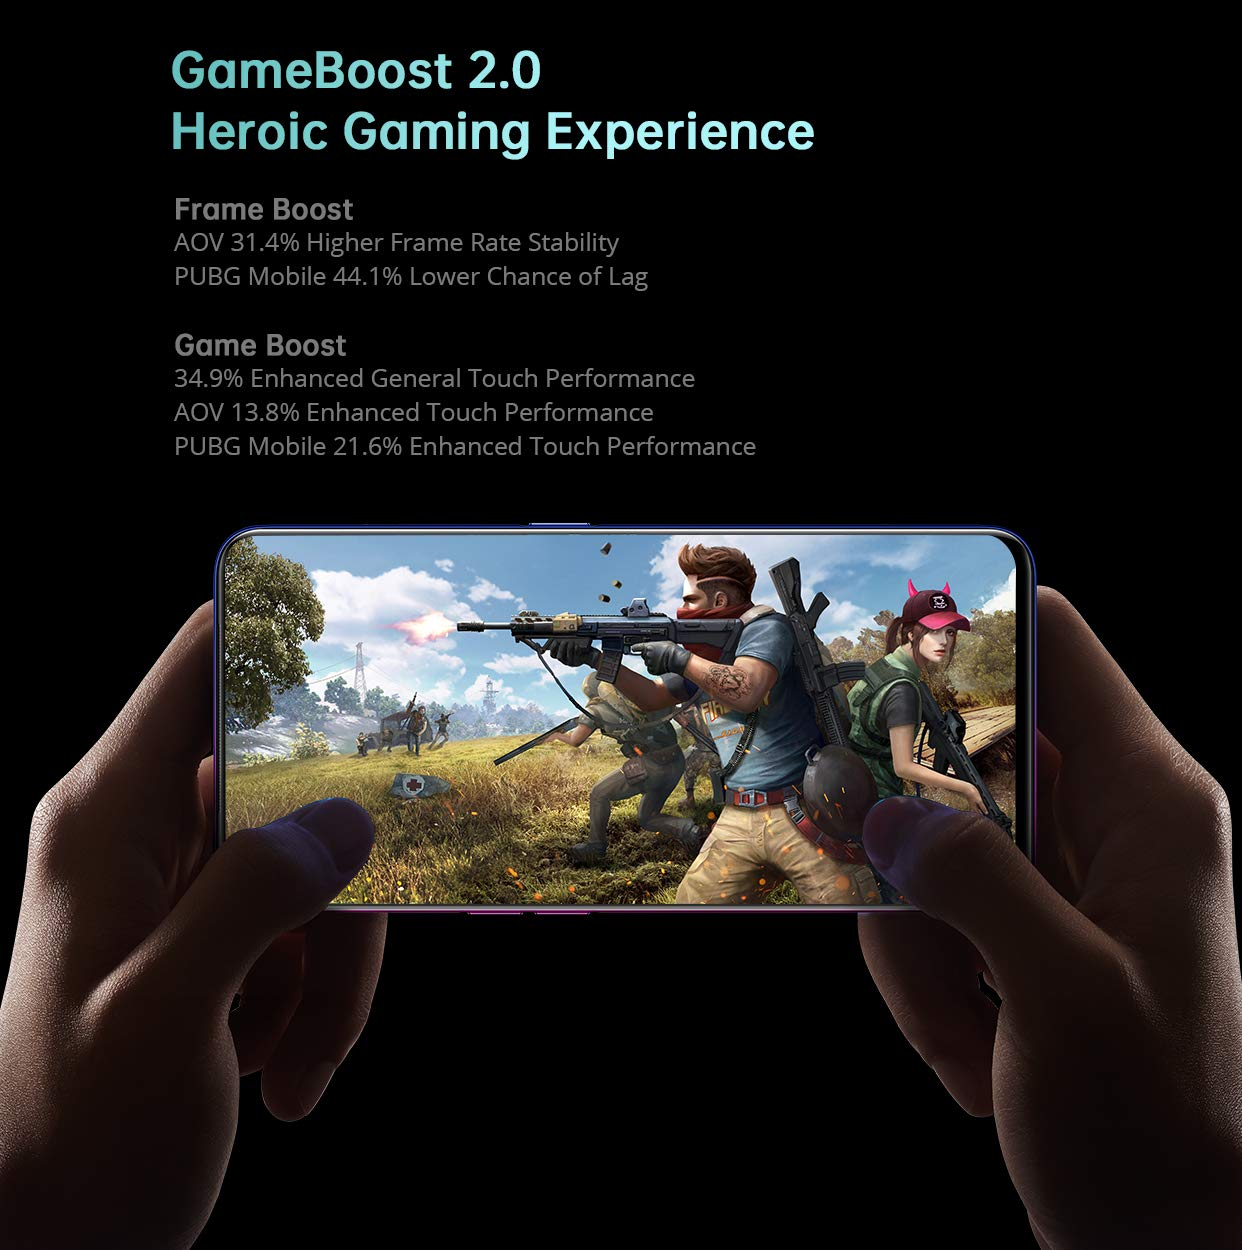 The Snapdragon 710 processor and Adreno 616 graphics should make this a decent gaming device